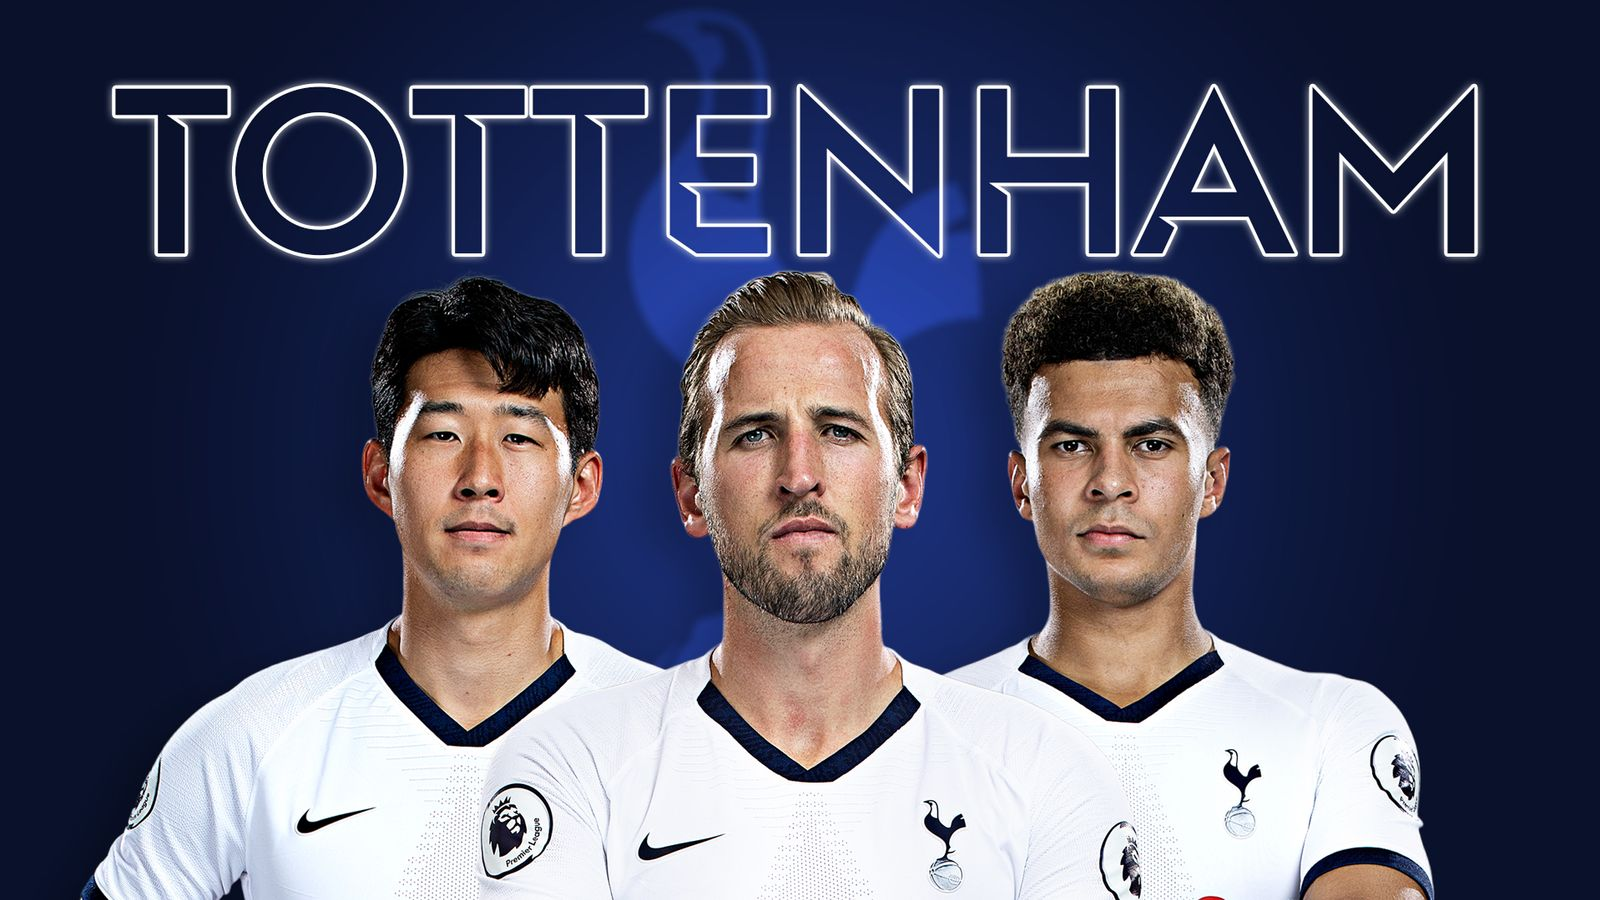 Tottenham 2020 21 What Will Be The Target For Jose Mourinho And Spurs This Season Football News Sky Sports